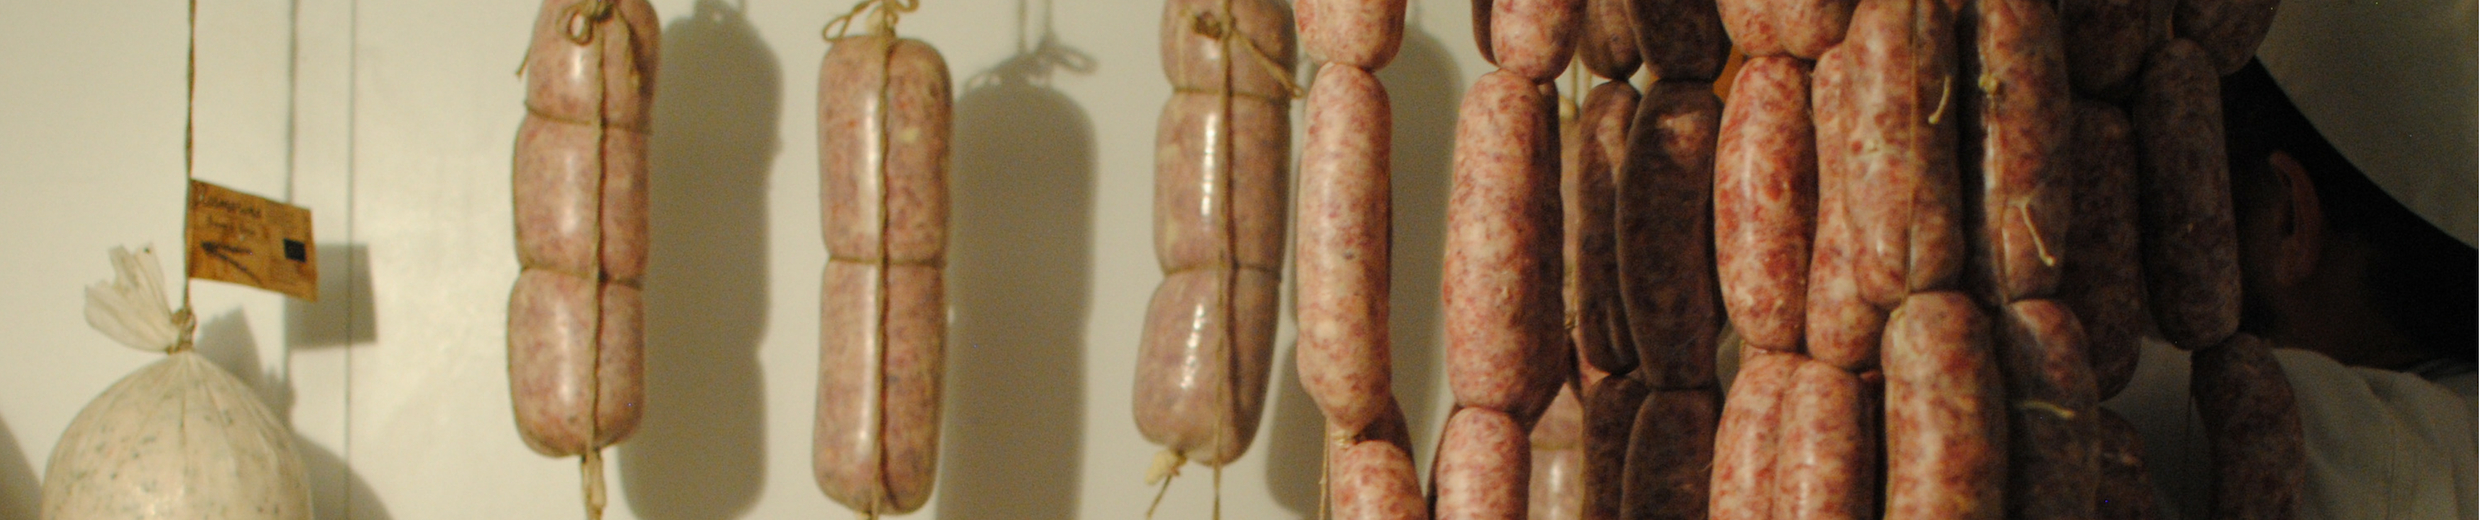 Butcher Apprentice hanging salumi at Spannocchia